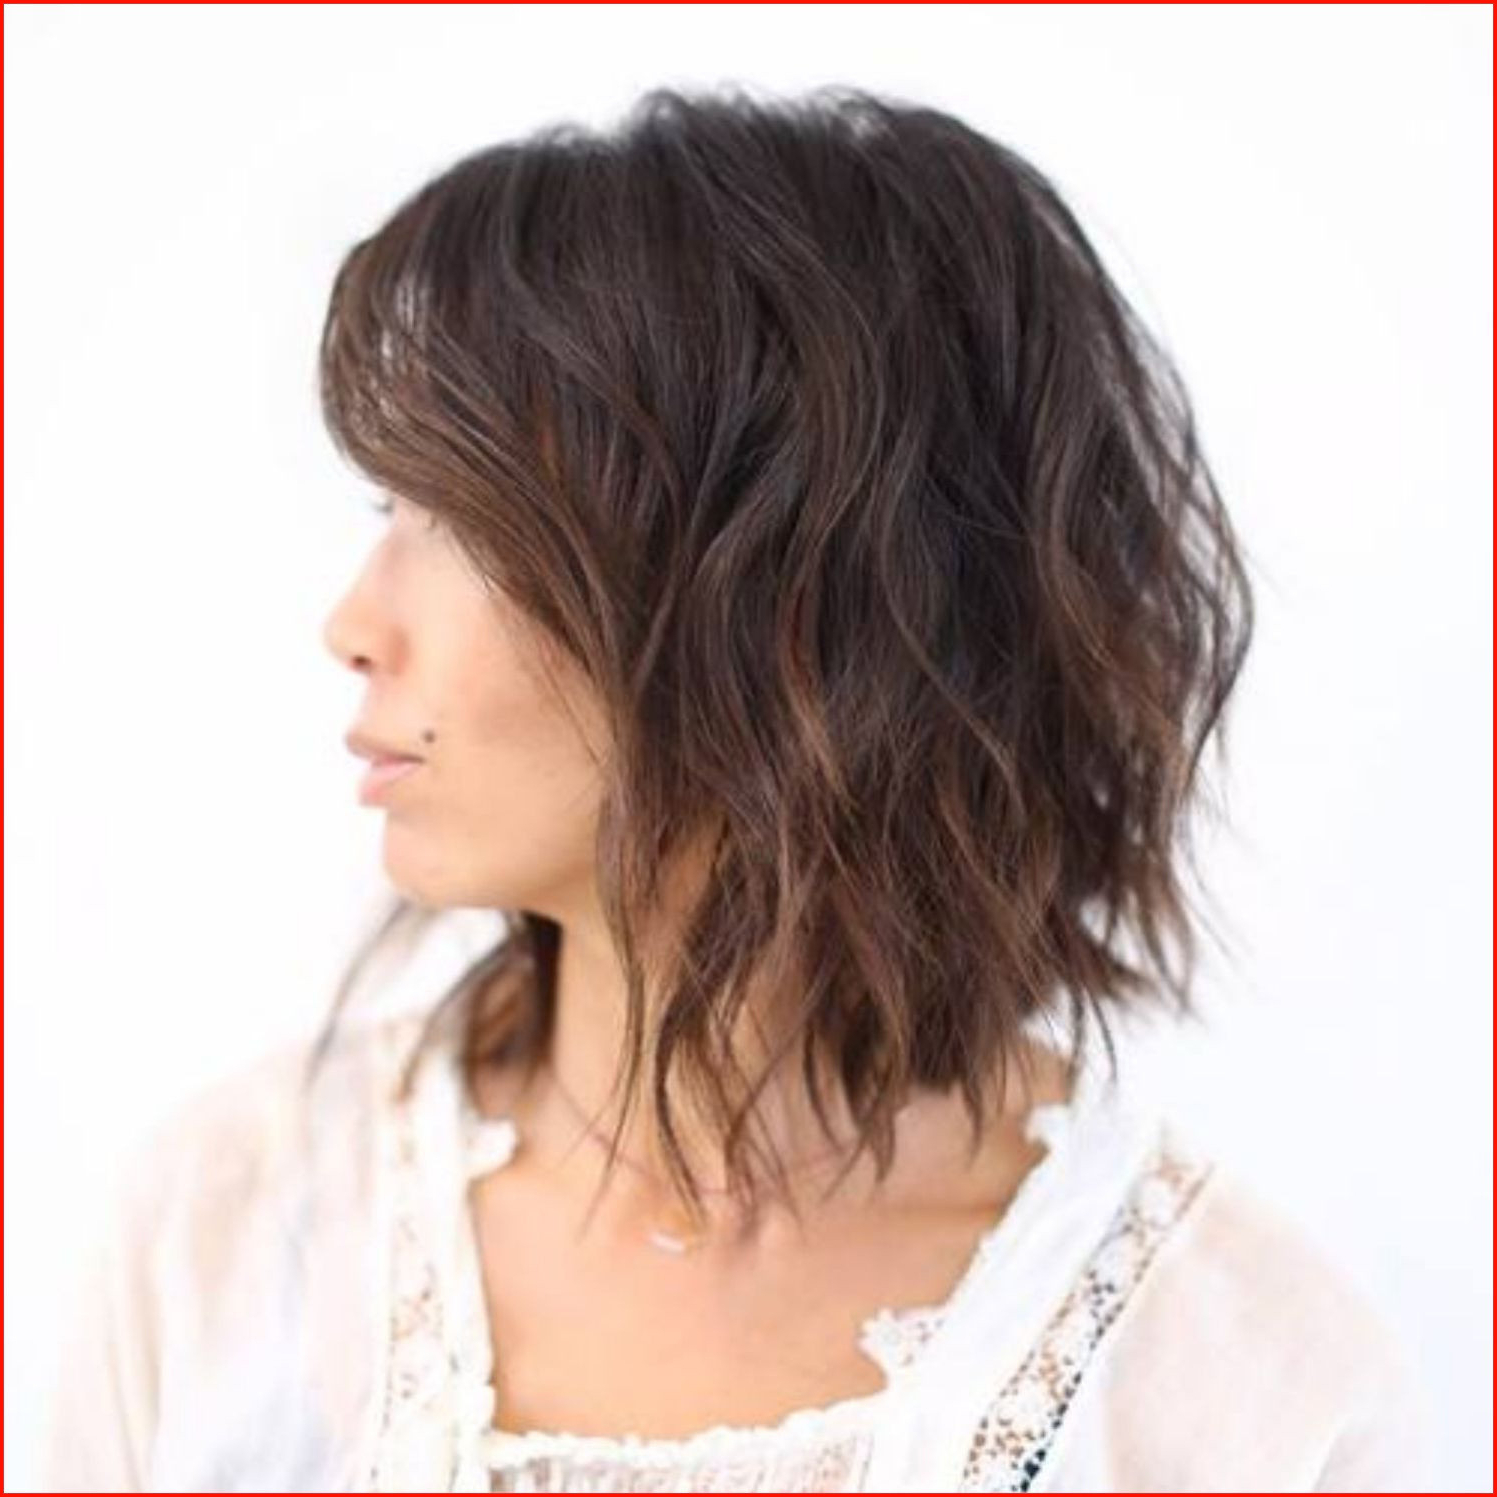 Amazing Medium Hairstyles Bobs Collection Of Bob Hairstyles Throughout Shoulder Length Choppy Hairstyles (View 12 of 20)